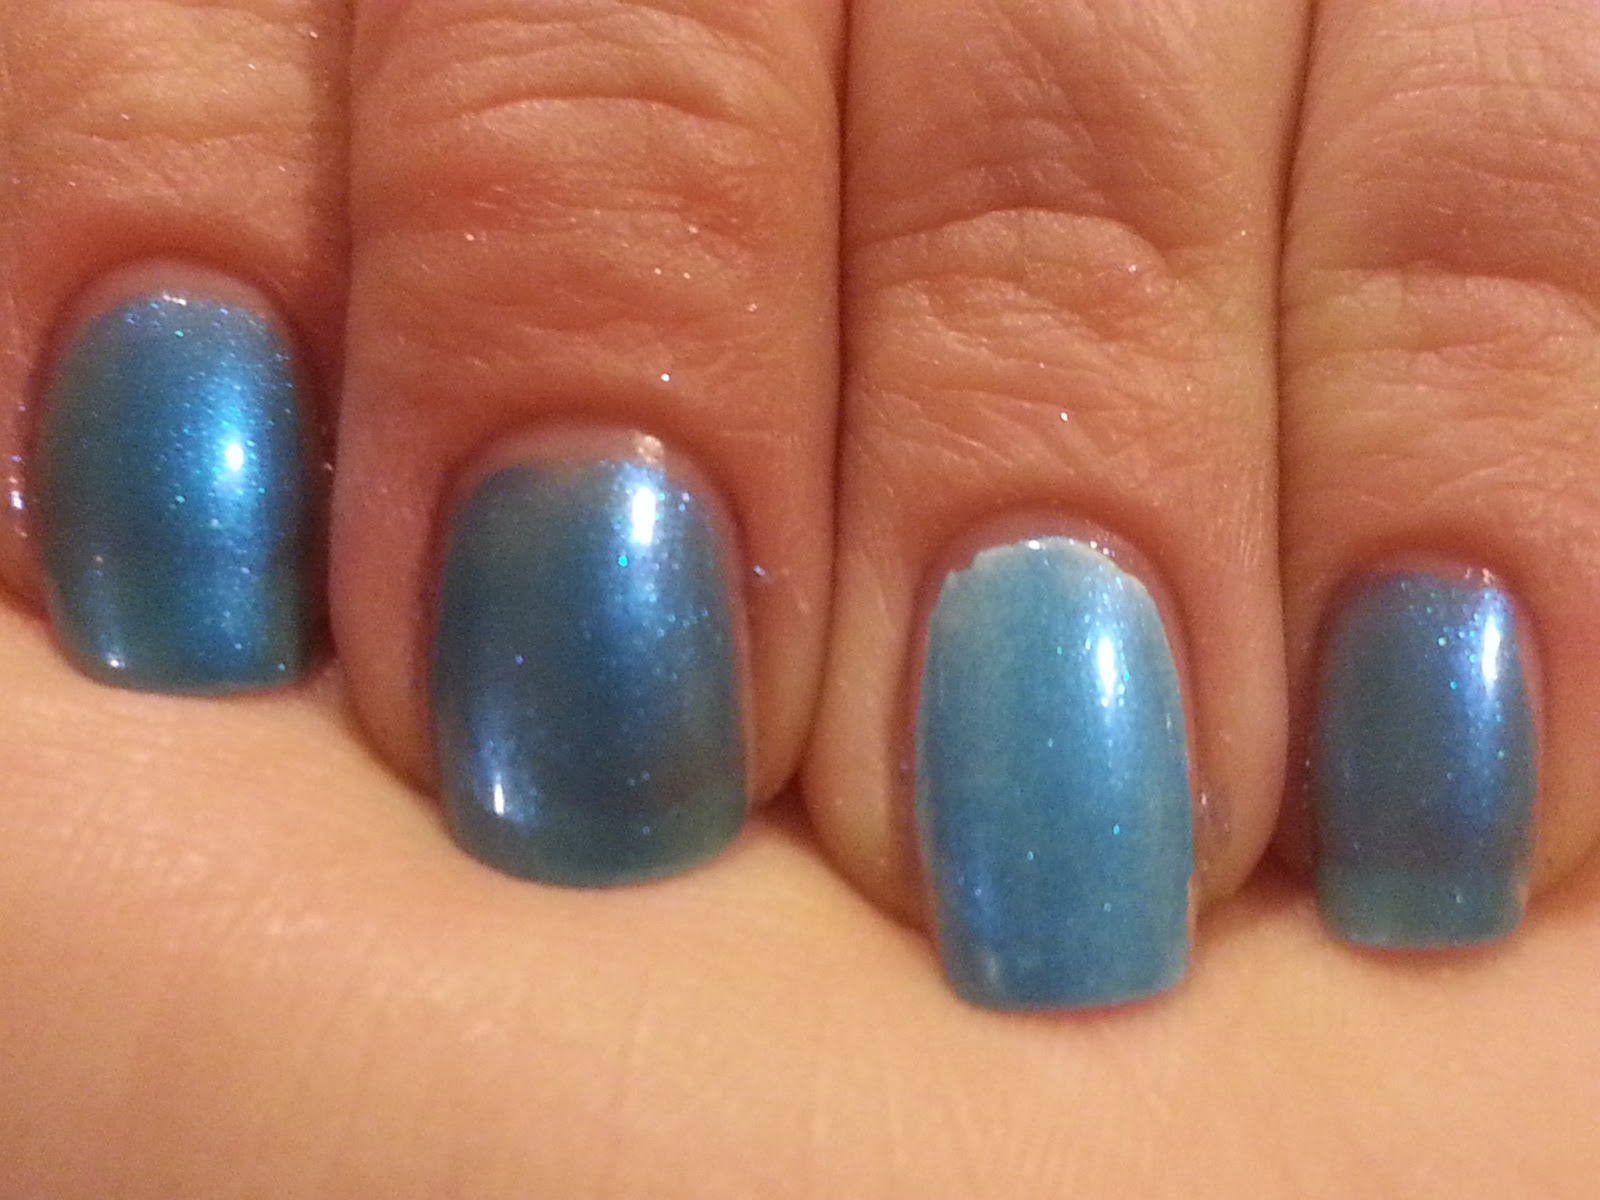 A Bad Case Of Blueballs Has A Turquoise Blue Jelly Base With Tons Of Turquoise Blue Shimmer I Have On 4 Coats With No Undie And 2 Coats On Over A White